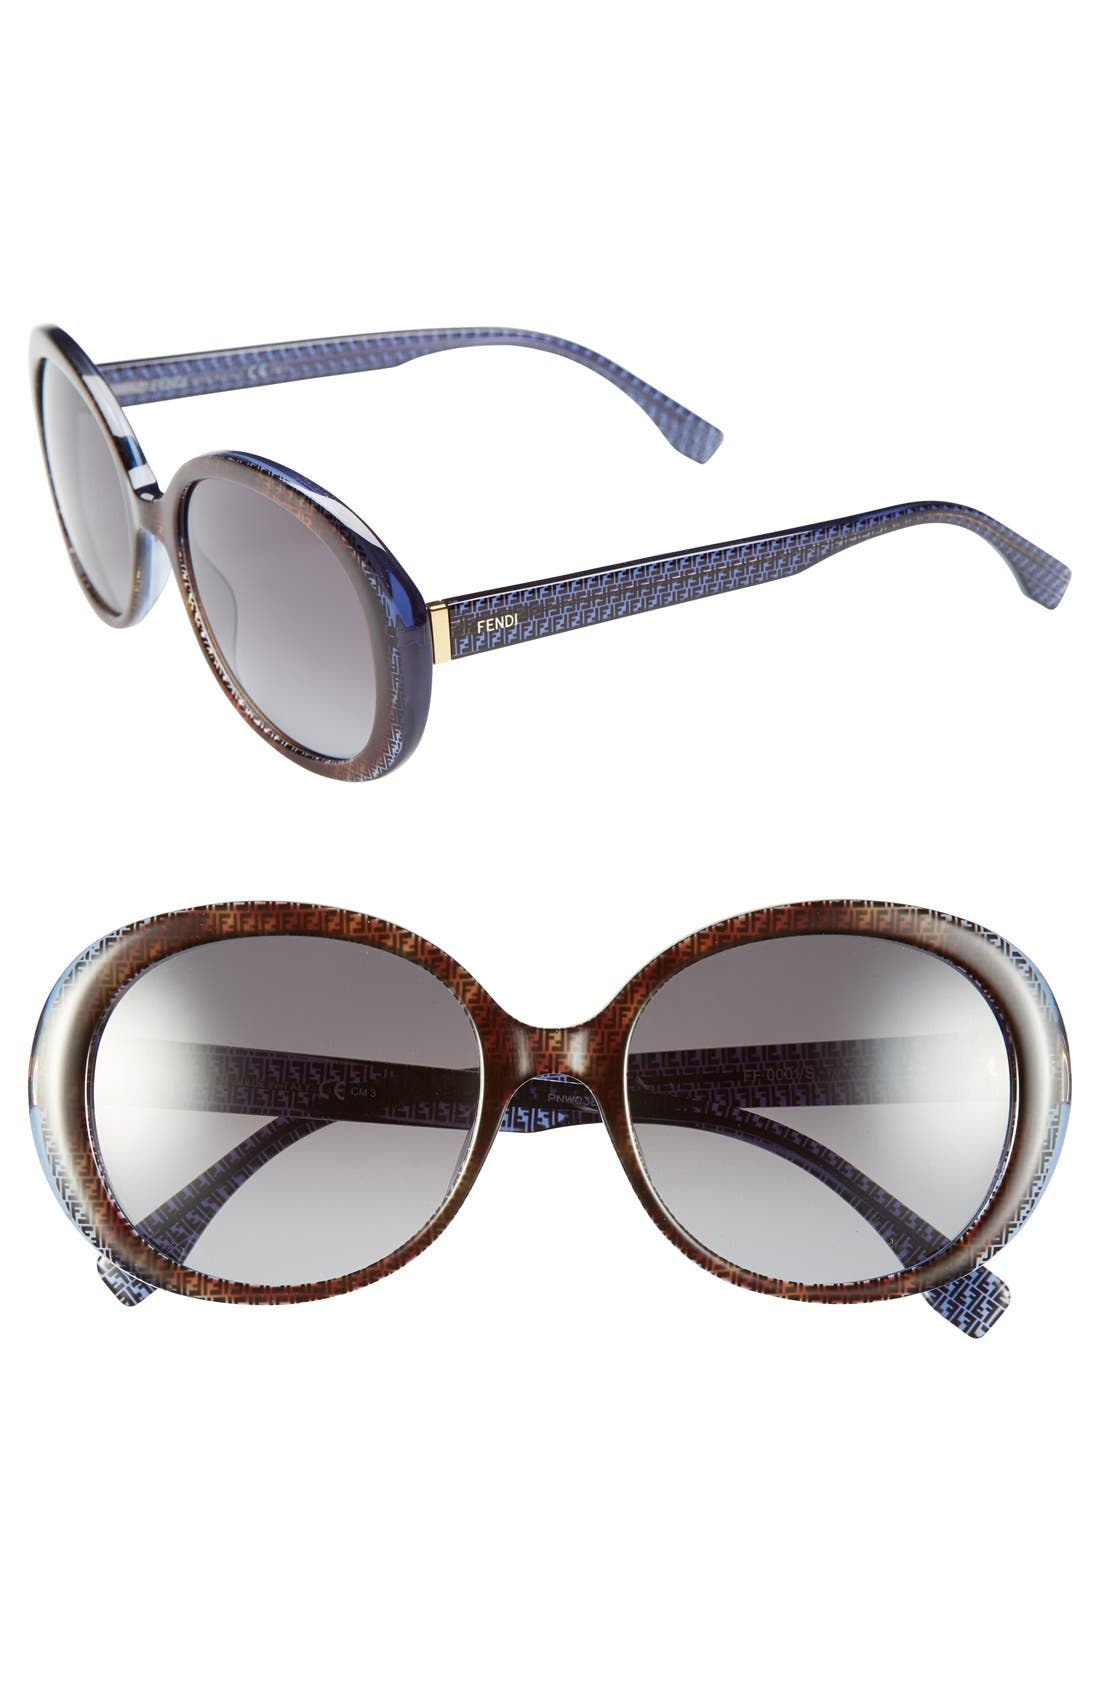 Alternate Image 1 Selected - Fendi 55mm Retro Sunglasses